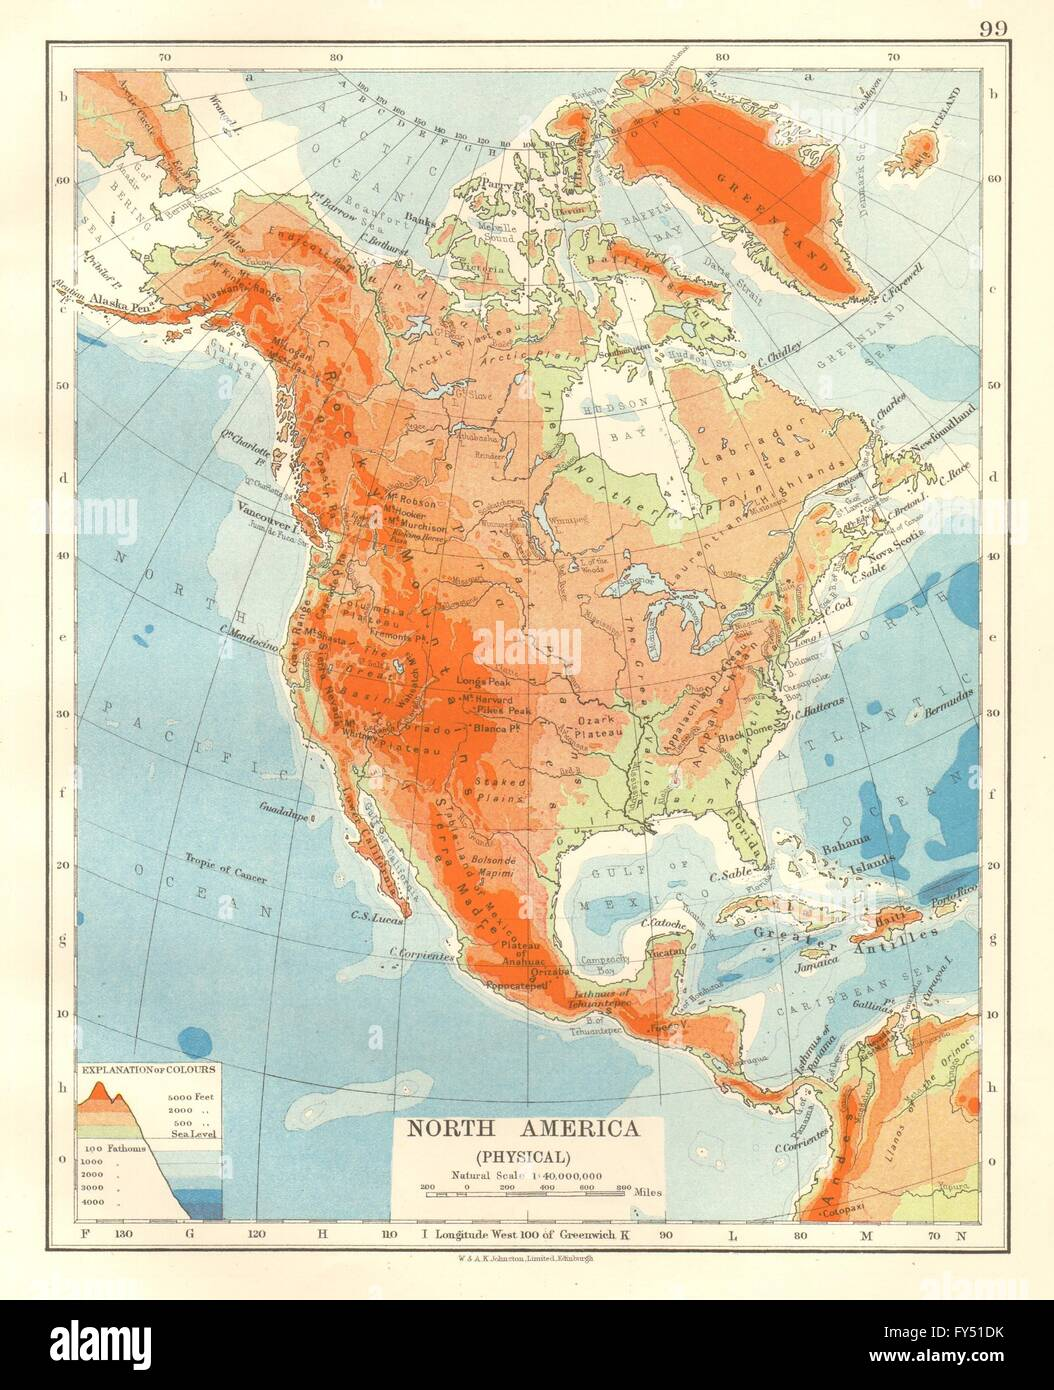 NORTH AMERICA PHYSICAL Relief Key mountains heights Ocean